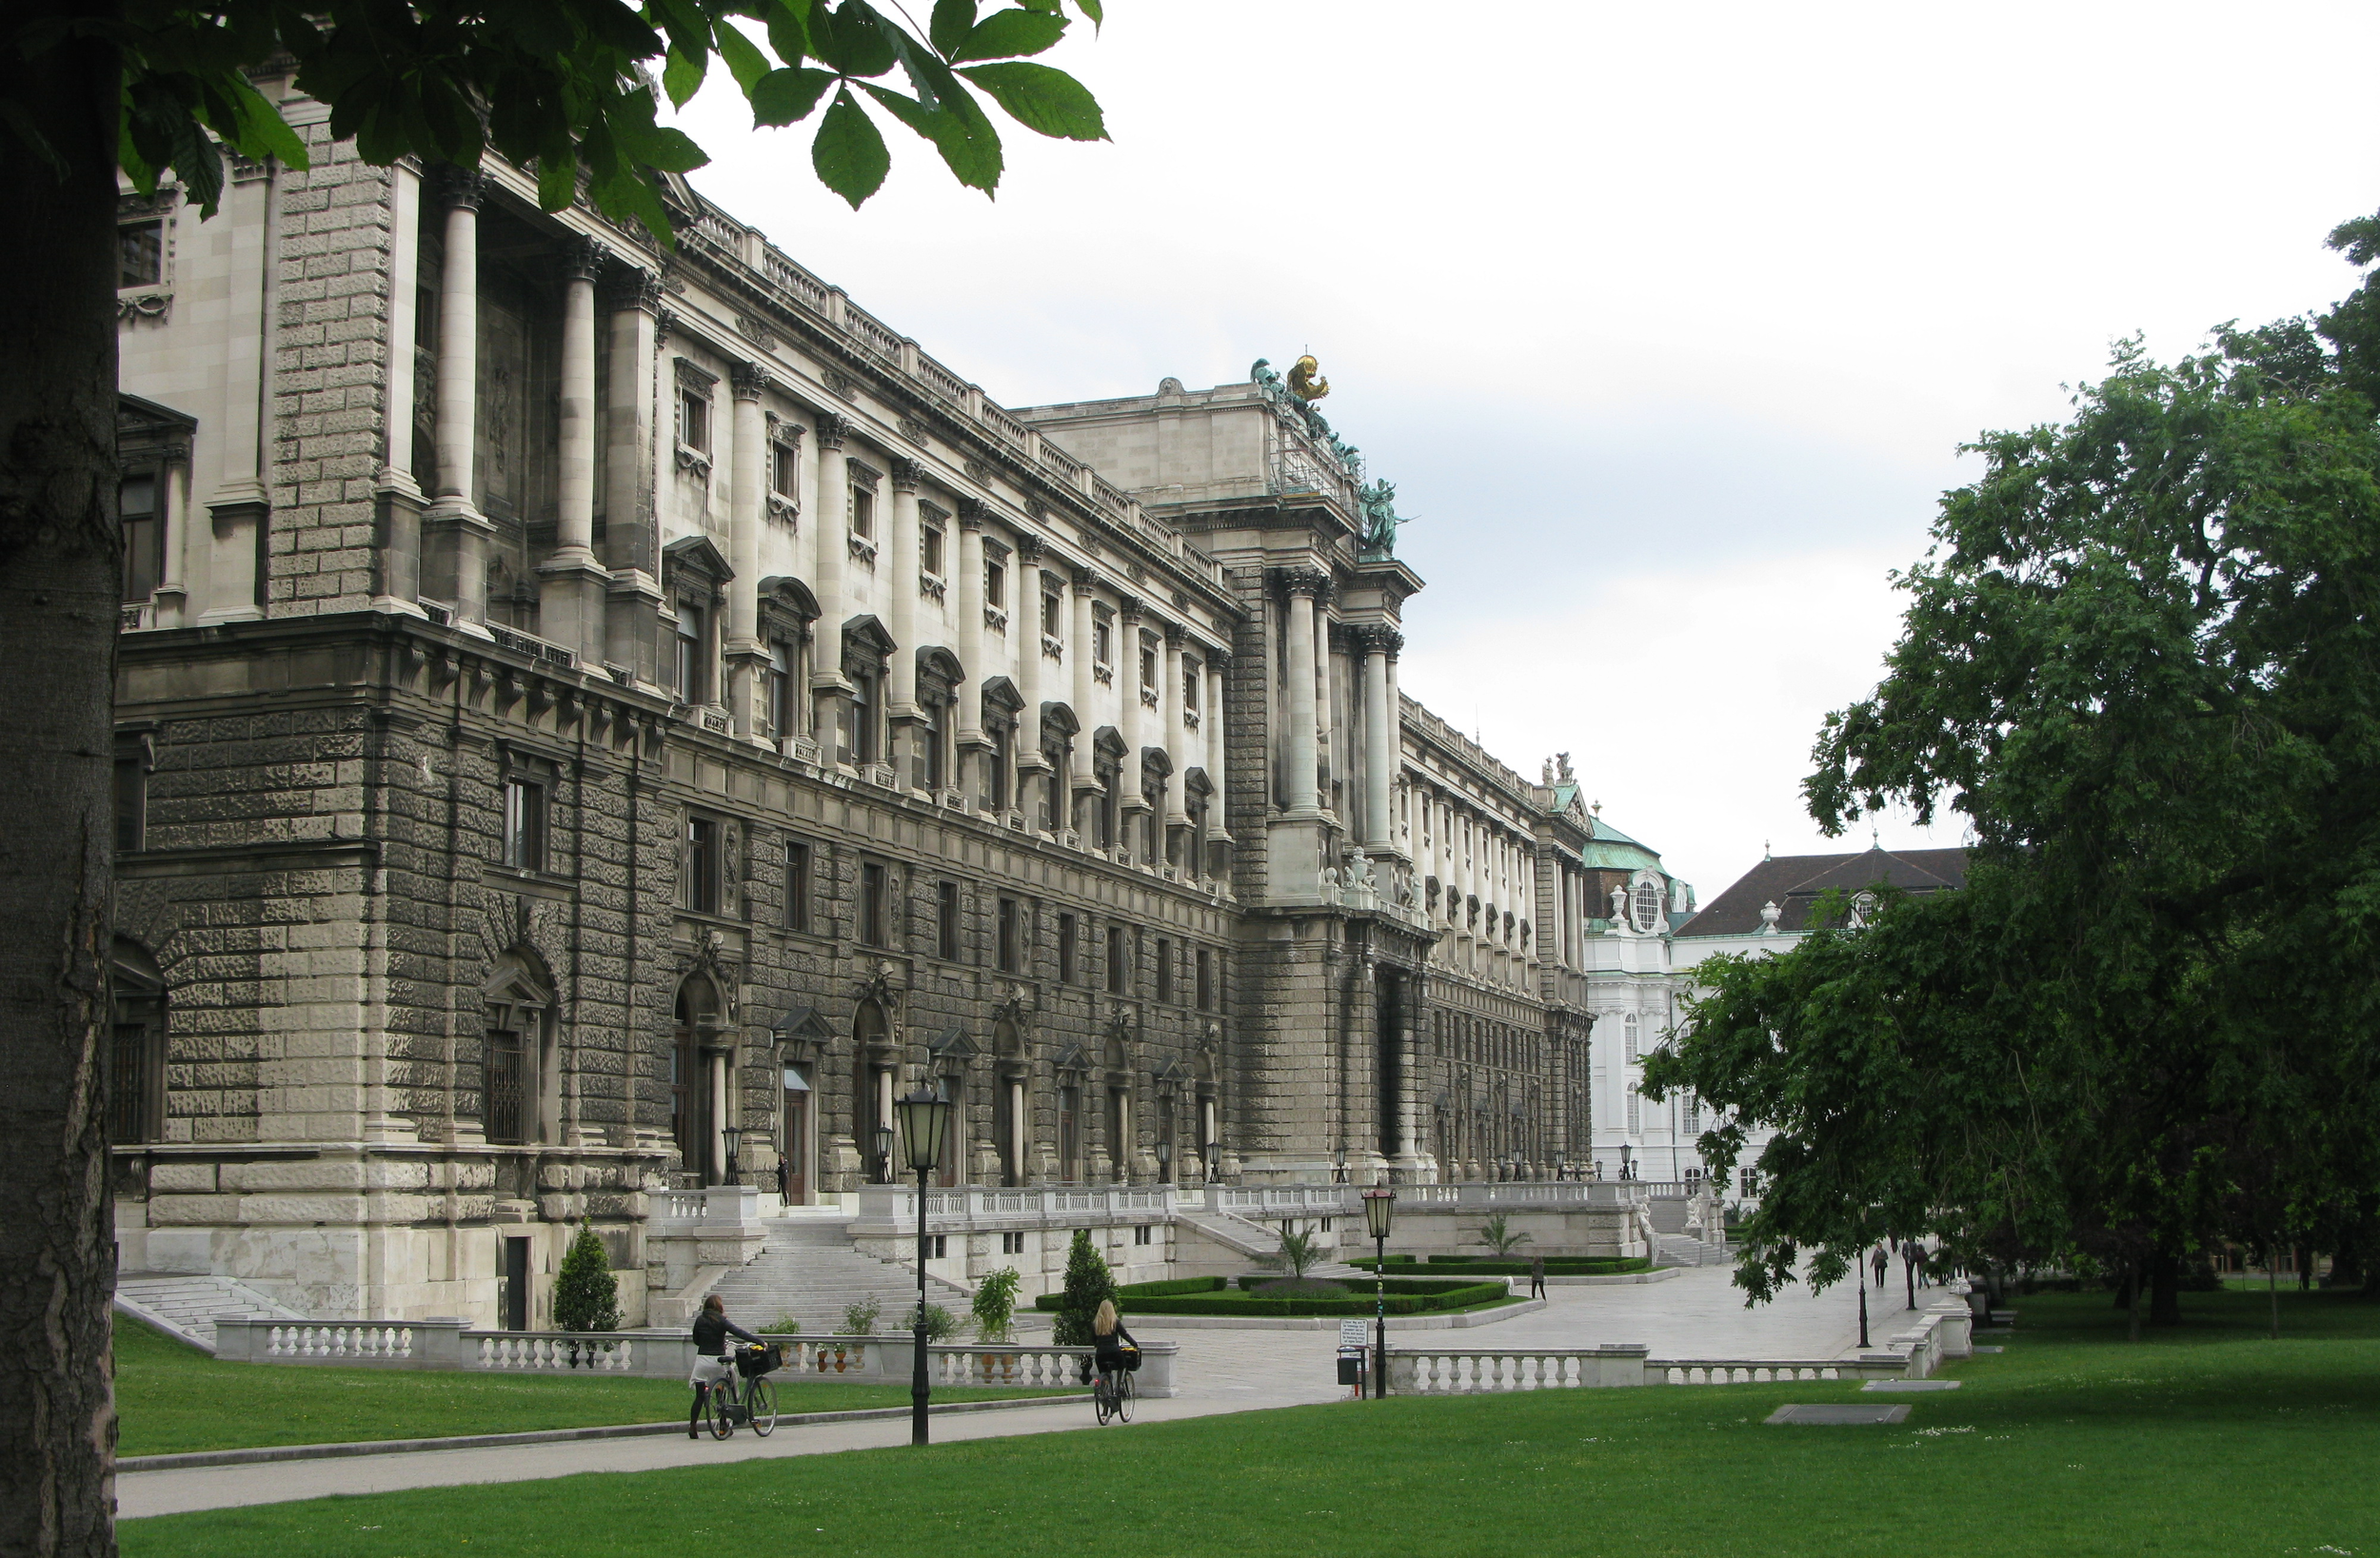 A wing of the massive Hofburg Palace